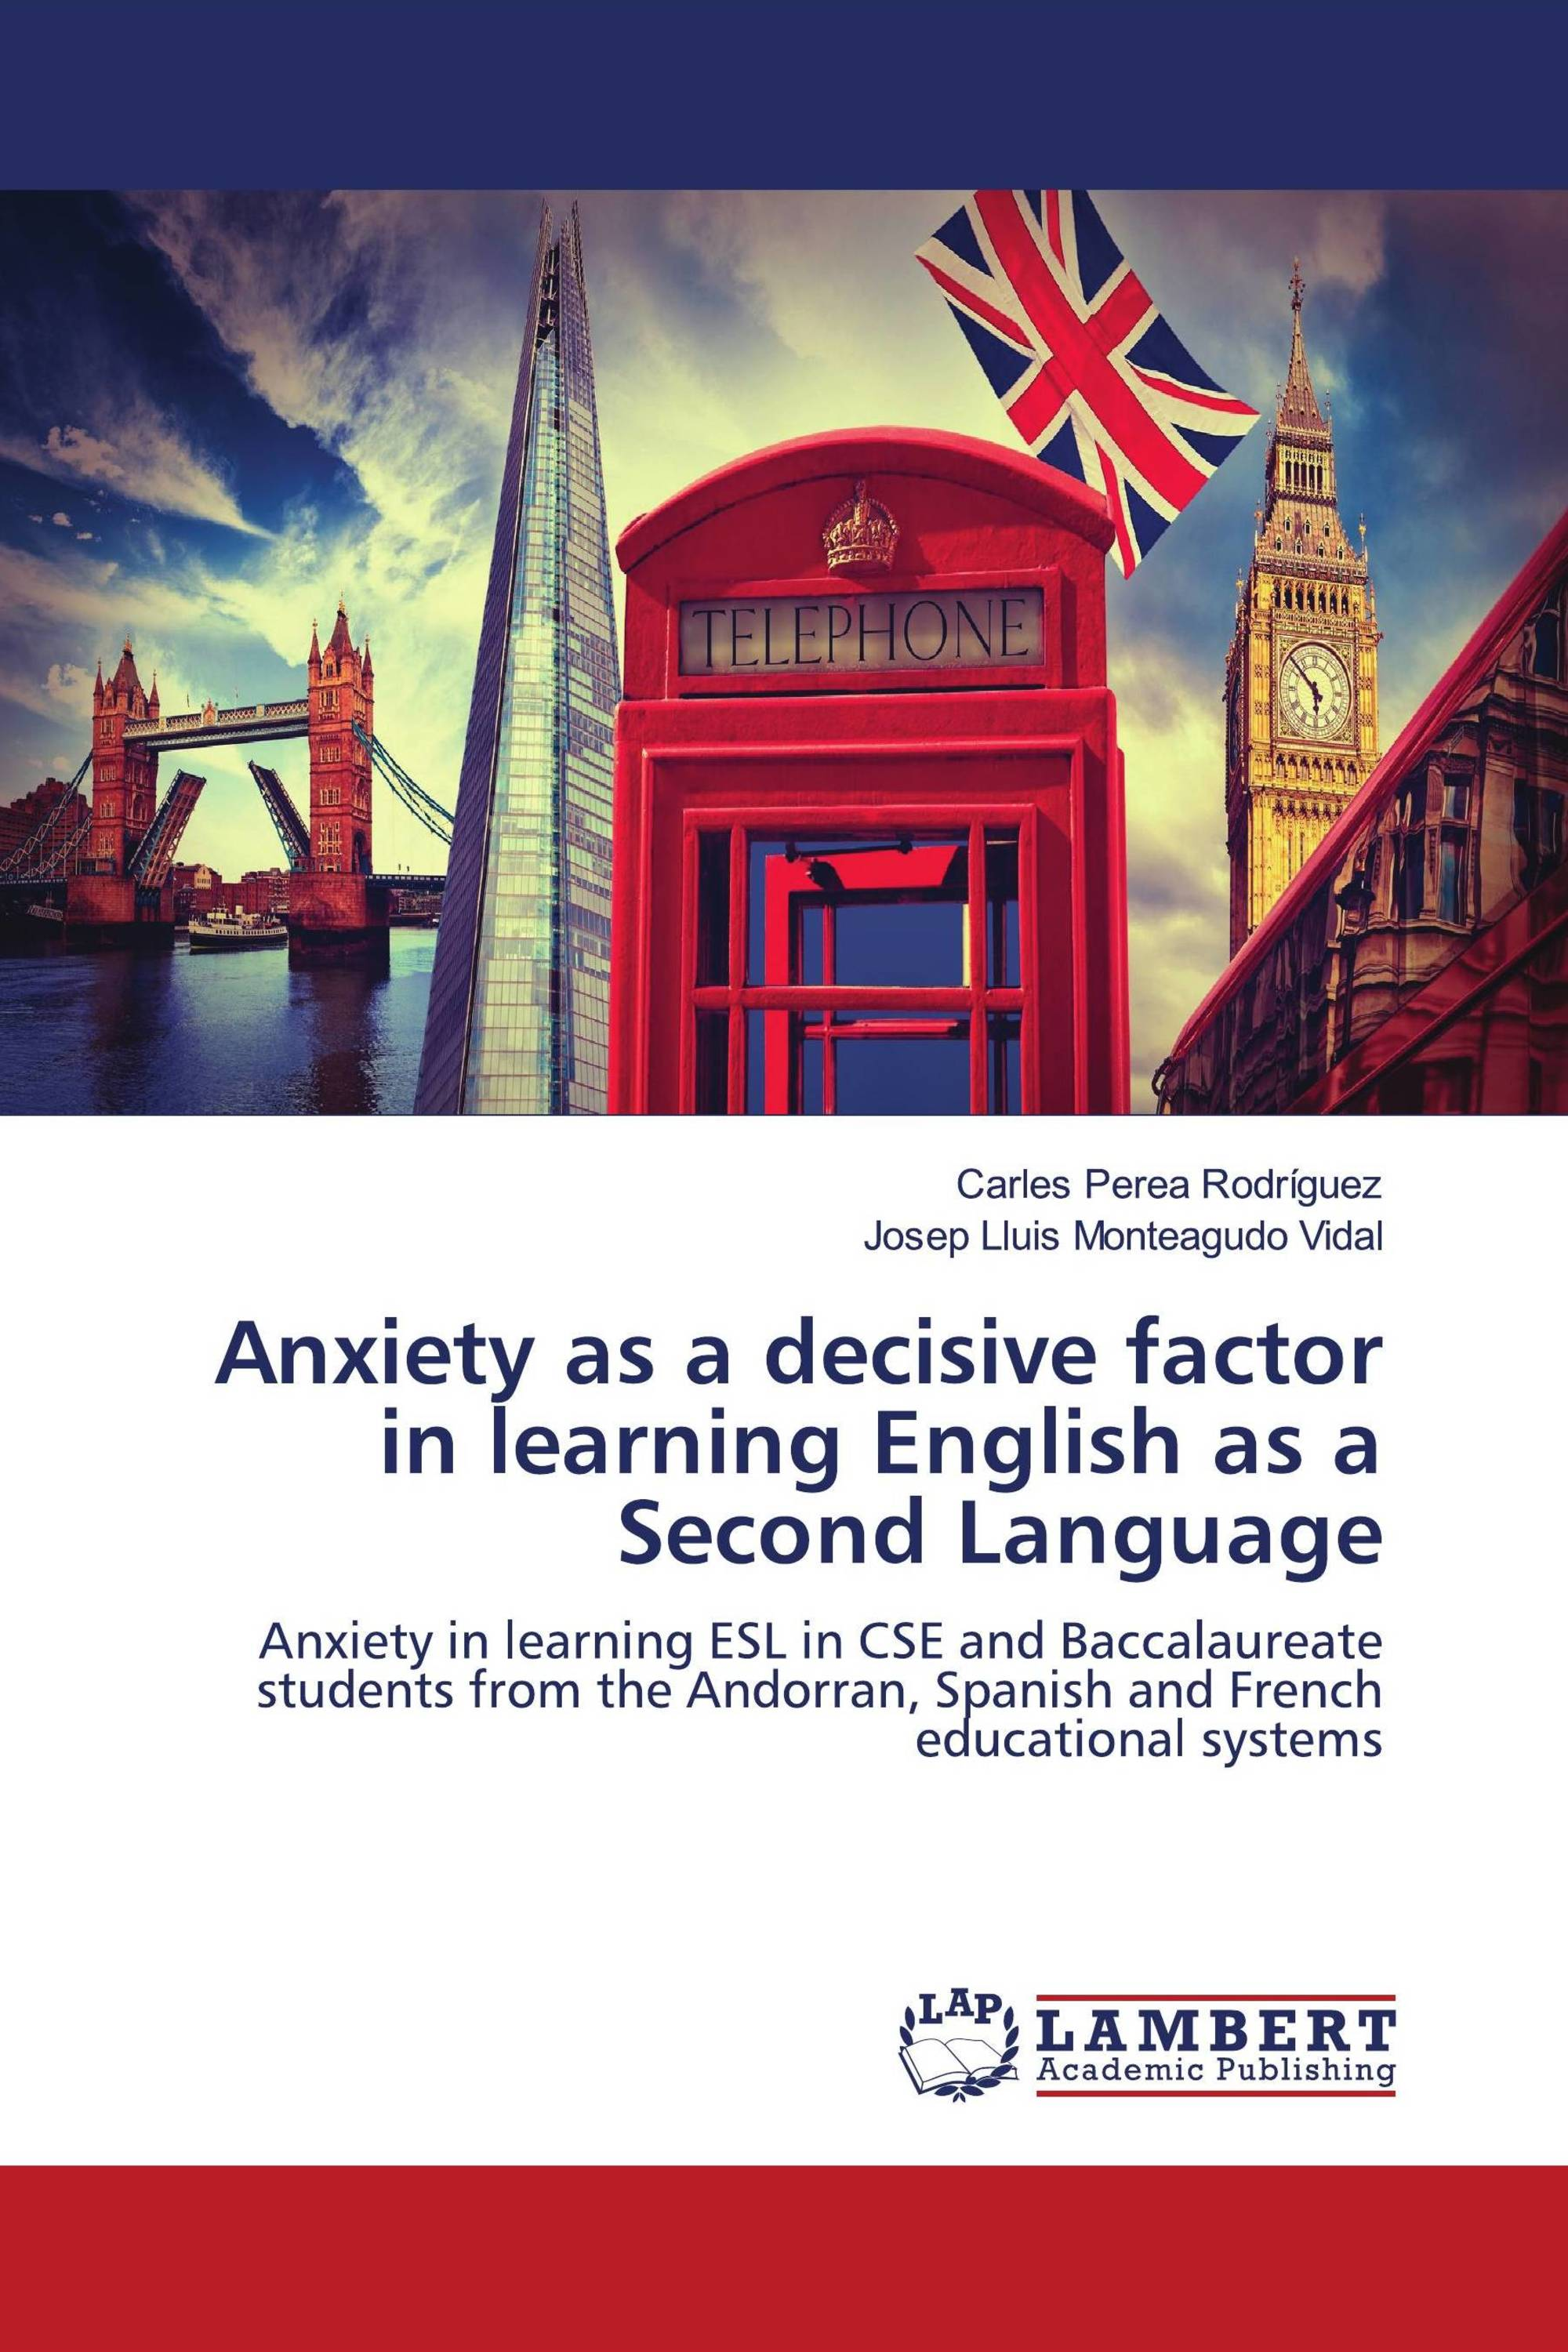 Anxiety as a decisive factor in learning English as a Second Language